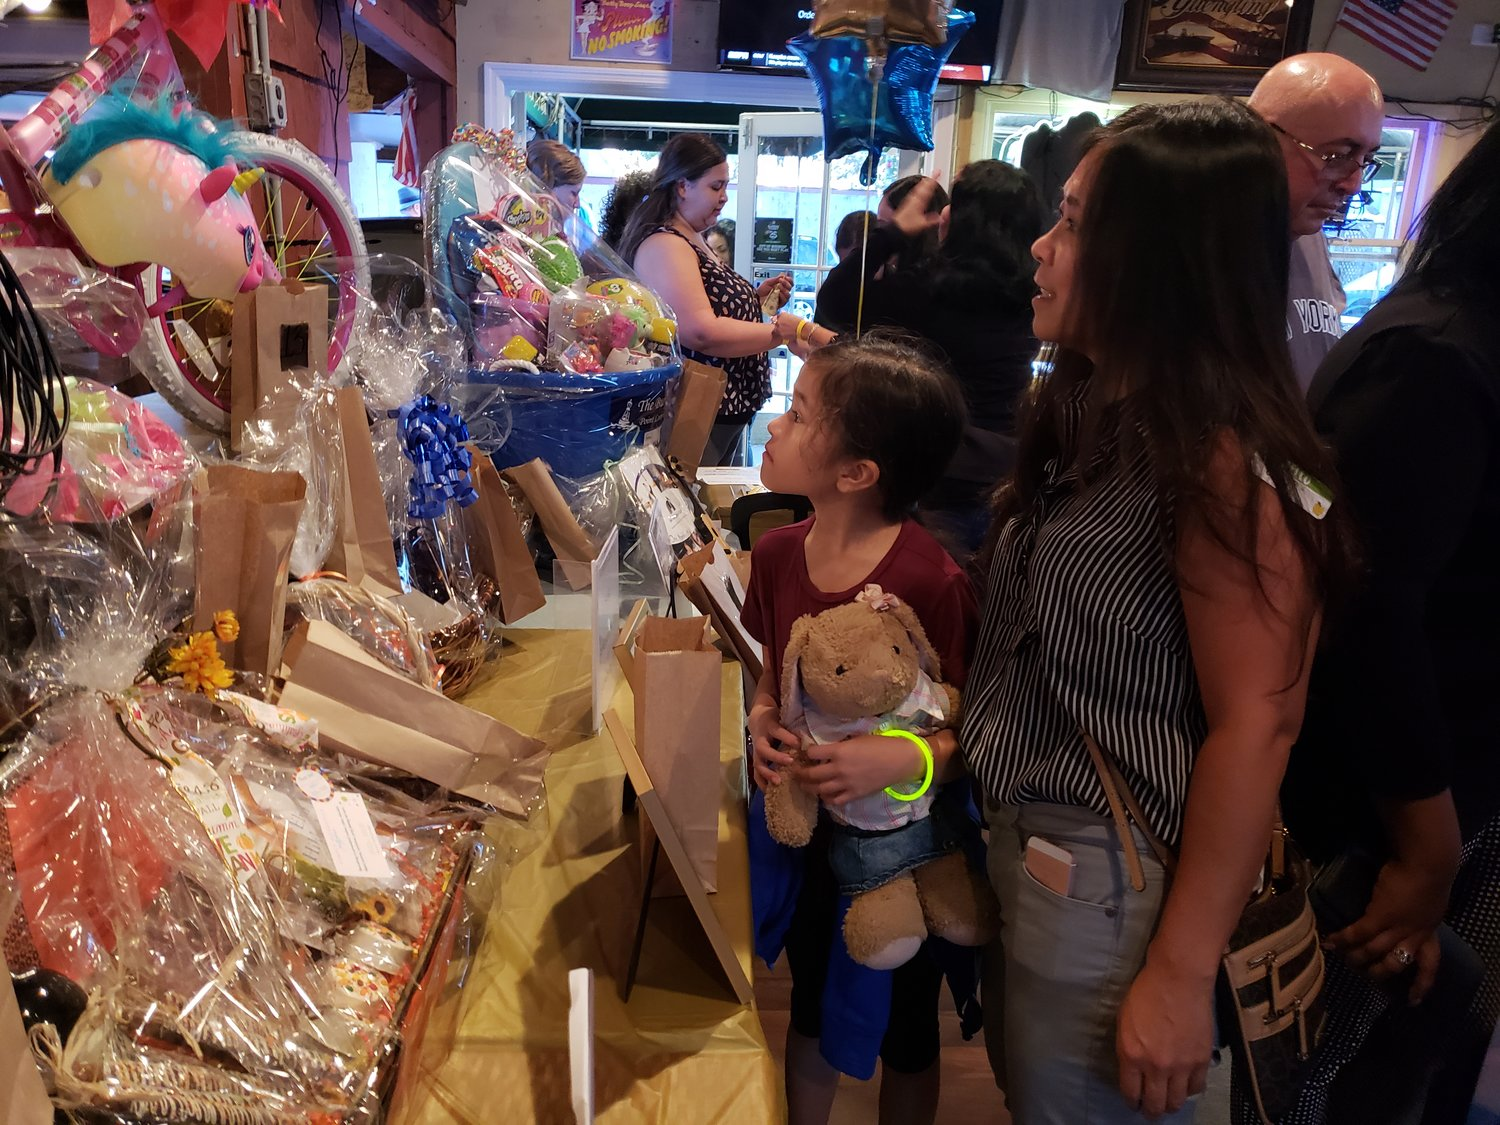 Nine-year-old Danielle Guerrera, from Levittown, checked out the raffle prizes with her mother, Cindy, at the fundraiser at Jeremy's on Oct. 9.